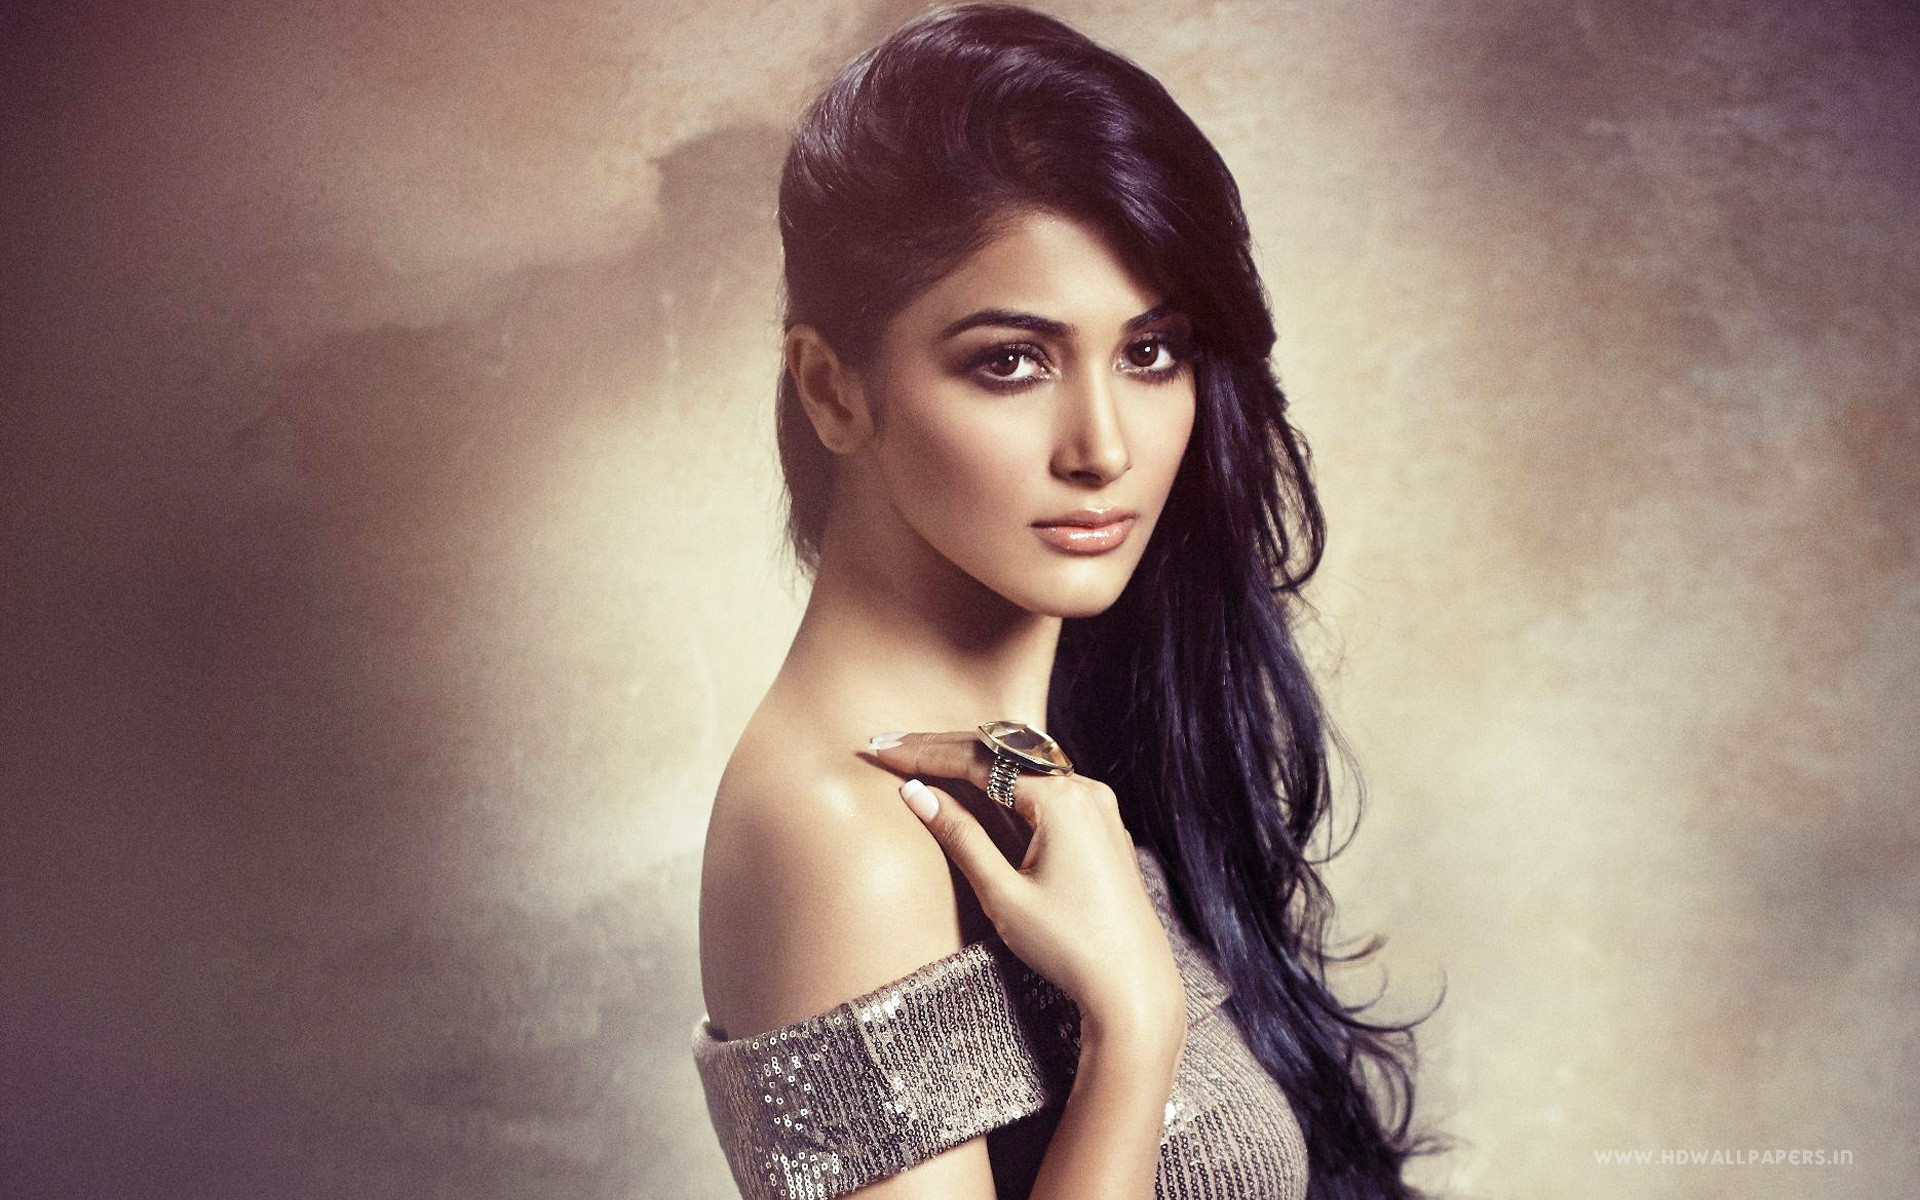 Bollywood Actress Wallpapers Hd 2018 70 Background Pictures